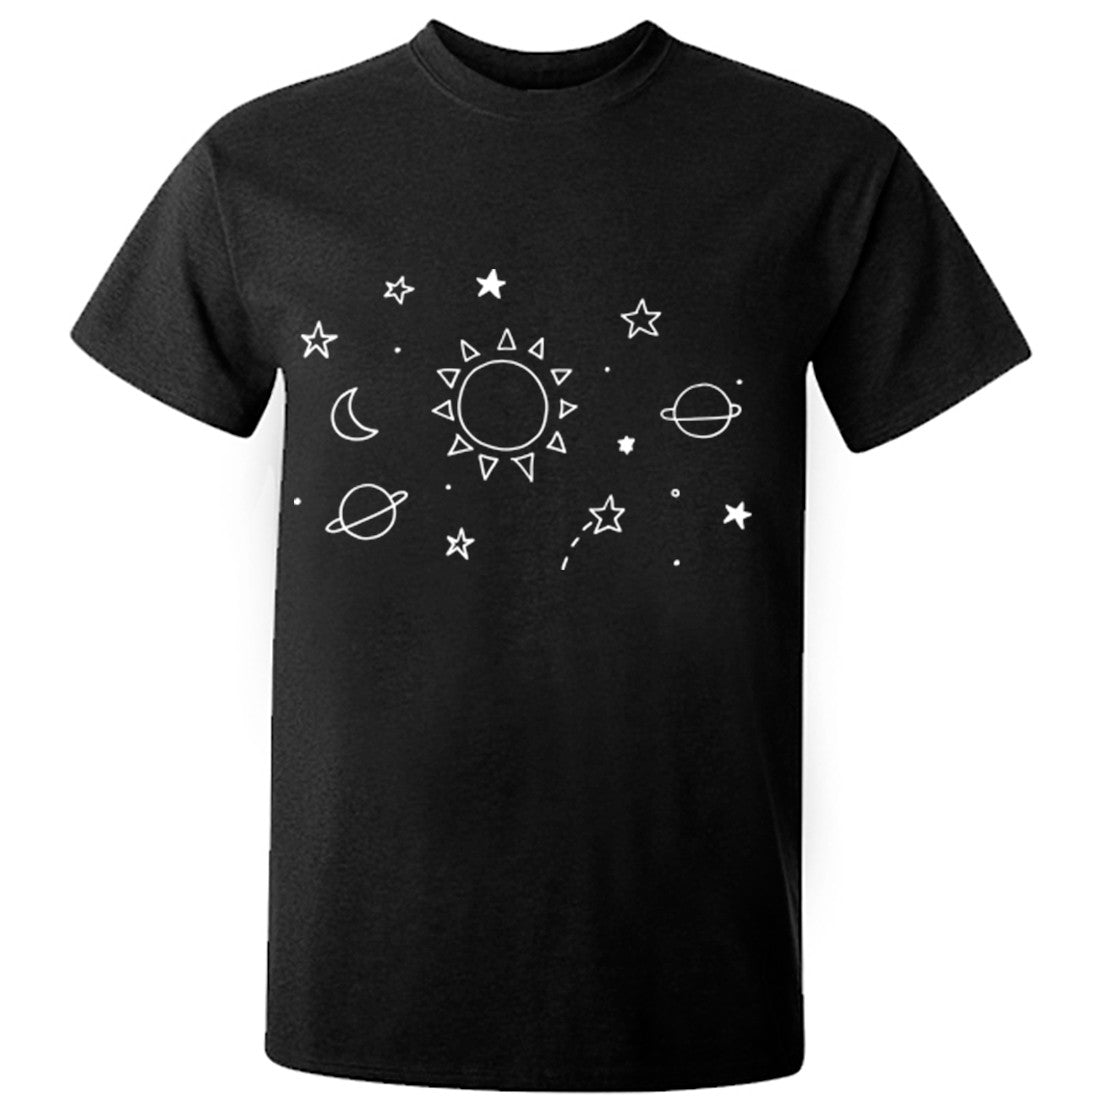 Space Illustration Unisex Fit T-Shirt K0392 - Illustrated Identity Ltd.